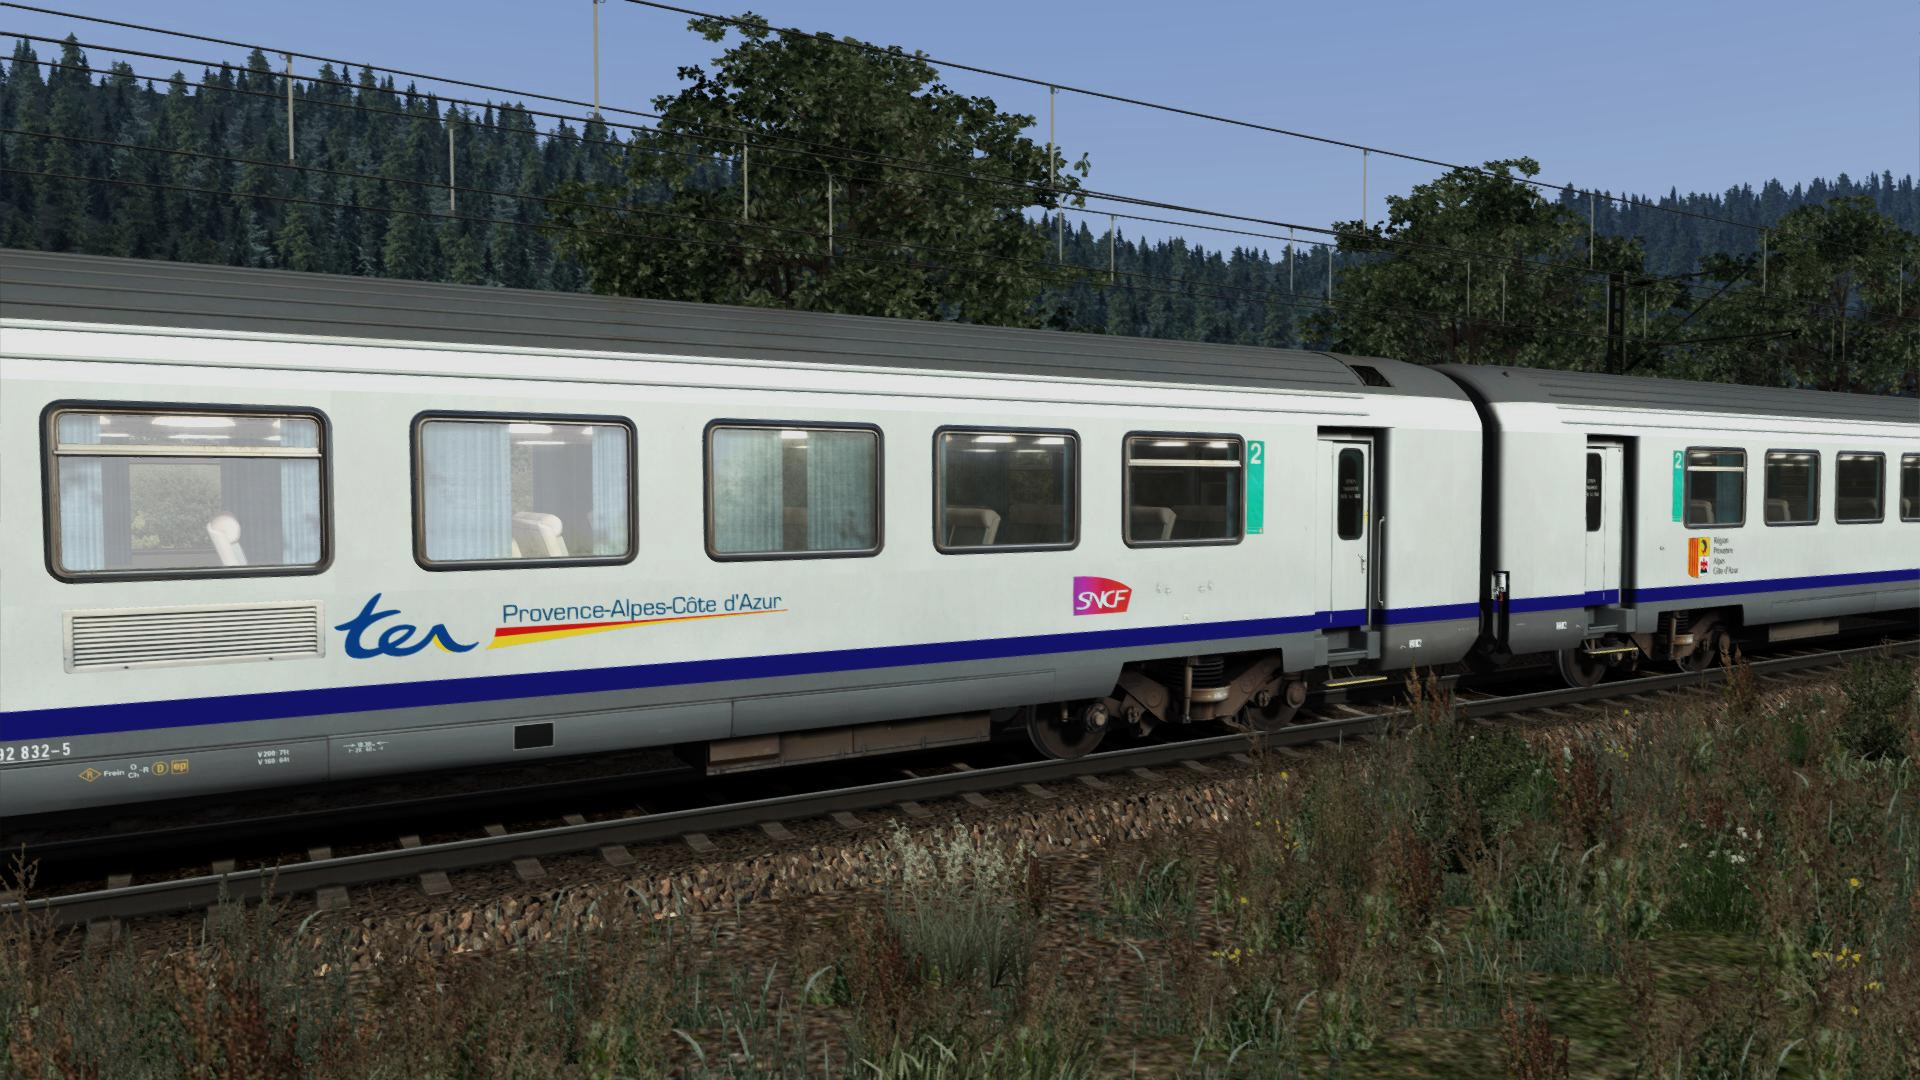 corail vtu coaches french regional lines simexpress